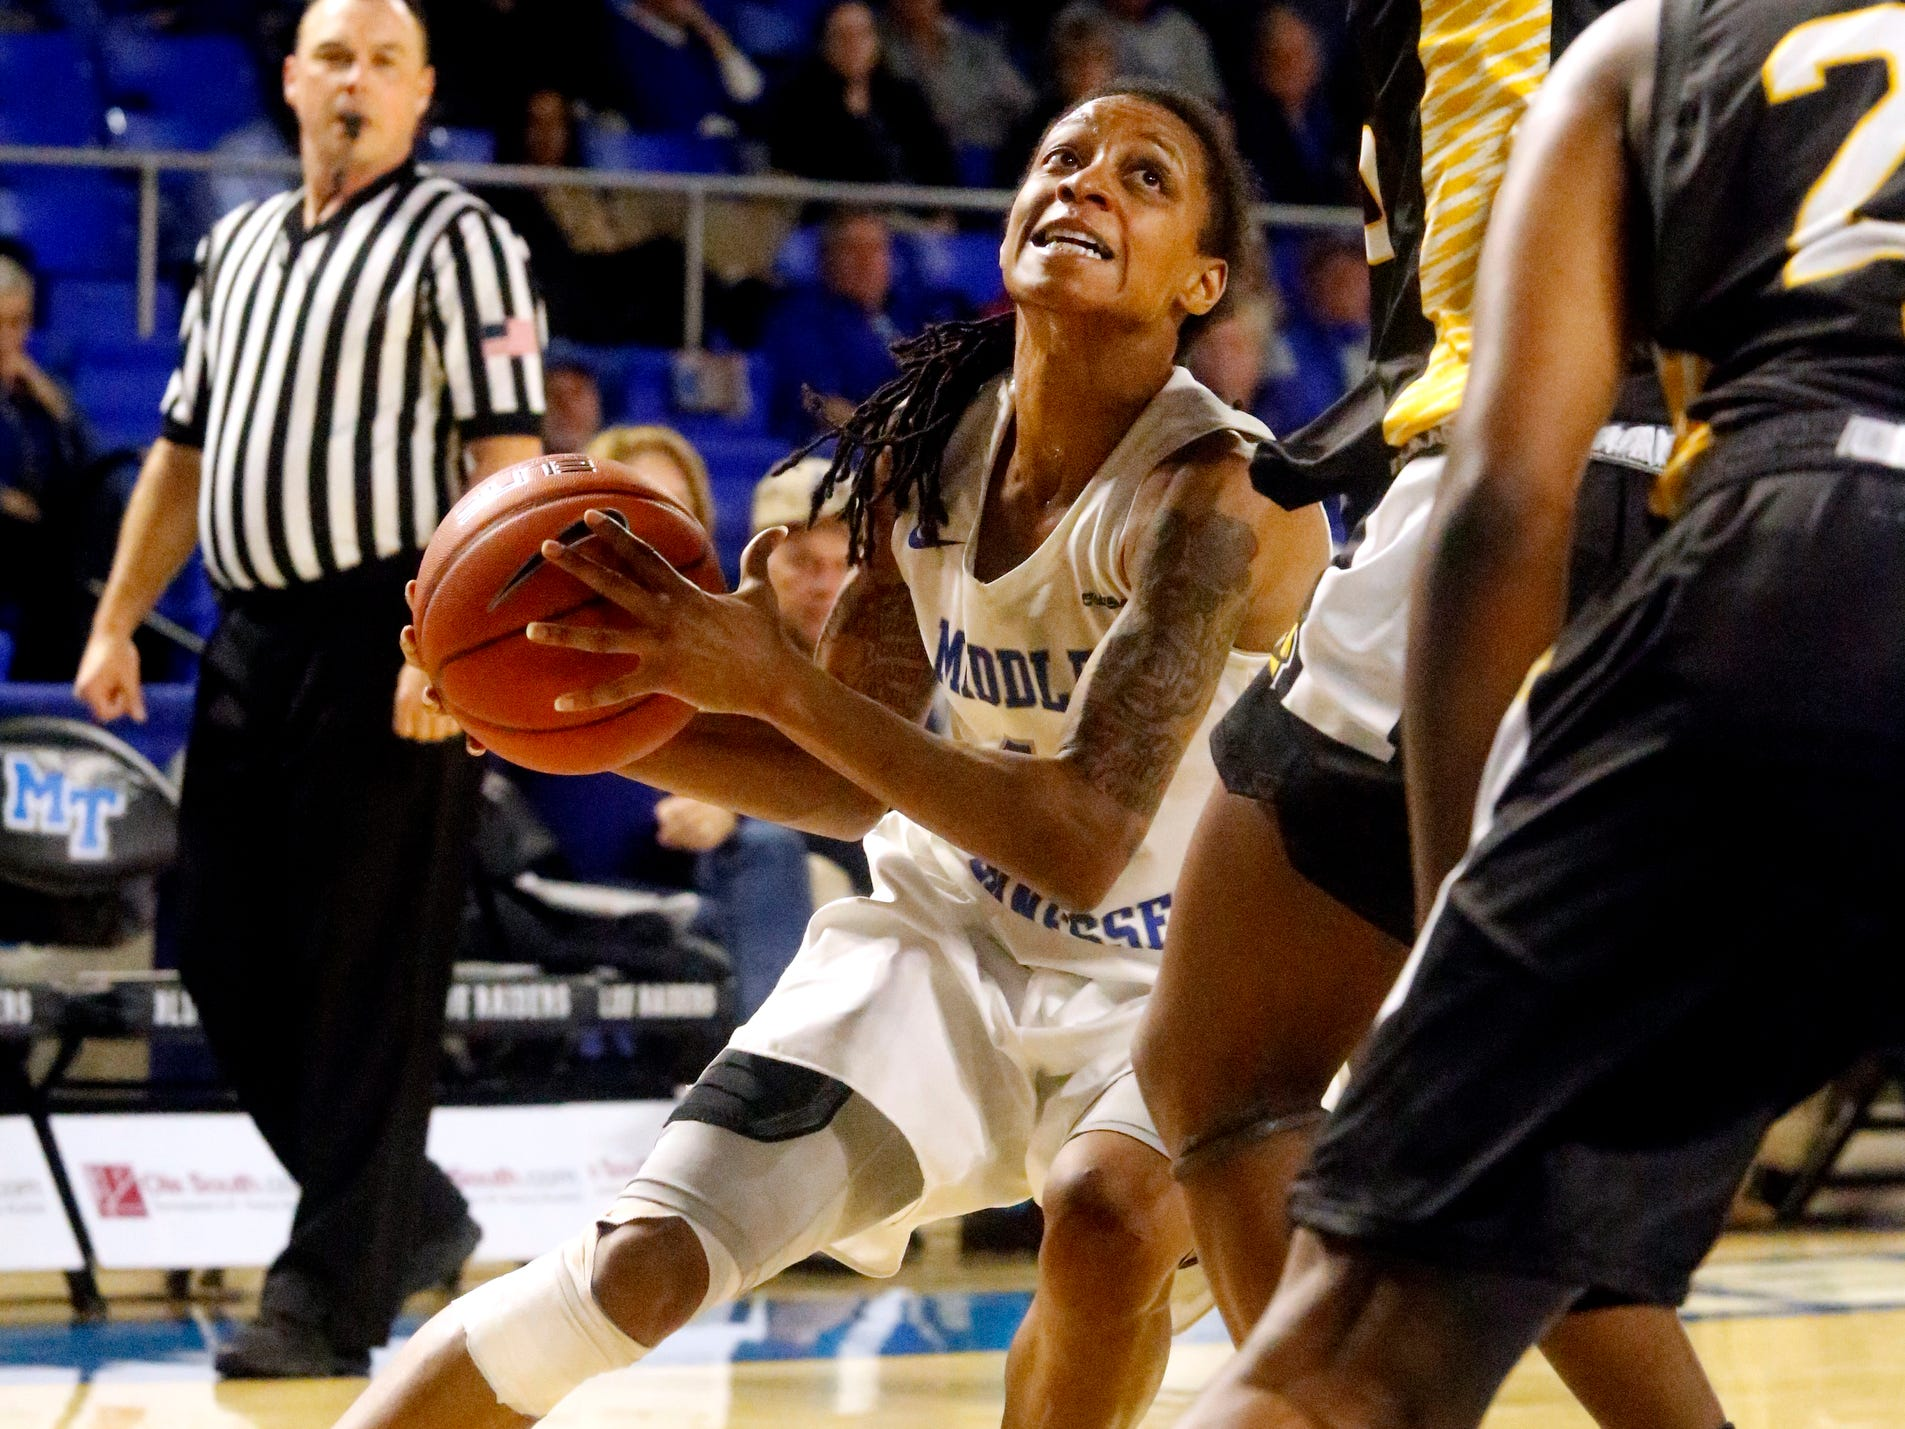 MTSU's guard A'Queen Hayes (1) pushes toward the basket during the game against Southern Miss, on Thursday Jan. 10, 2019.